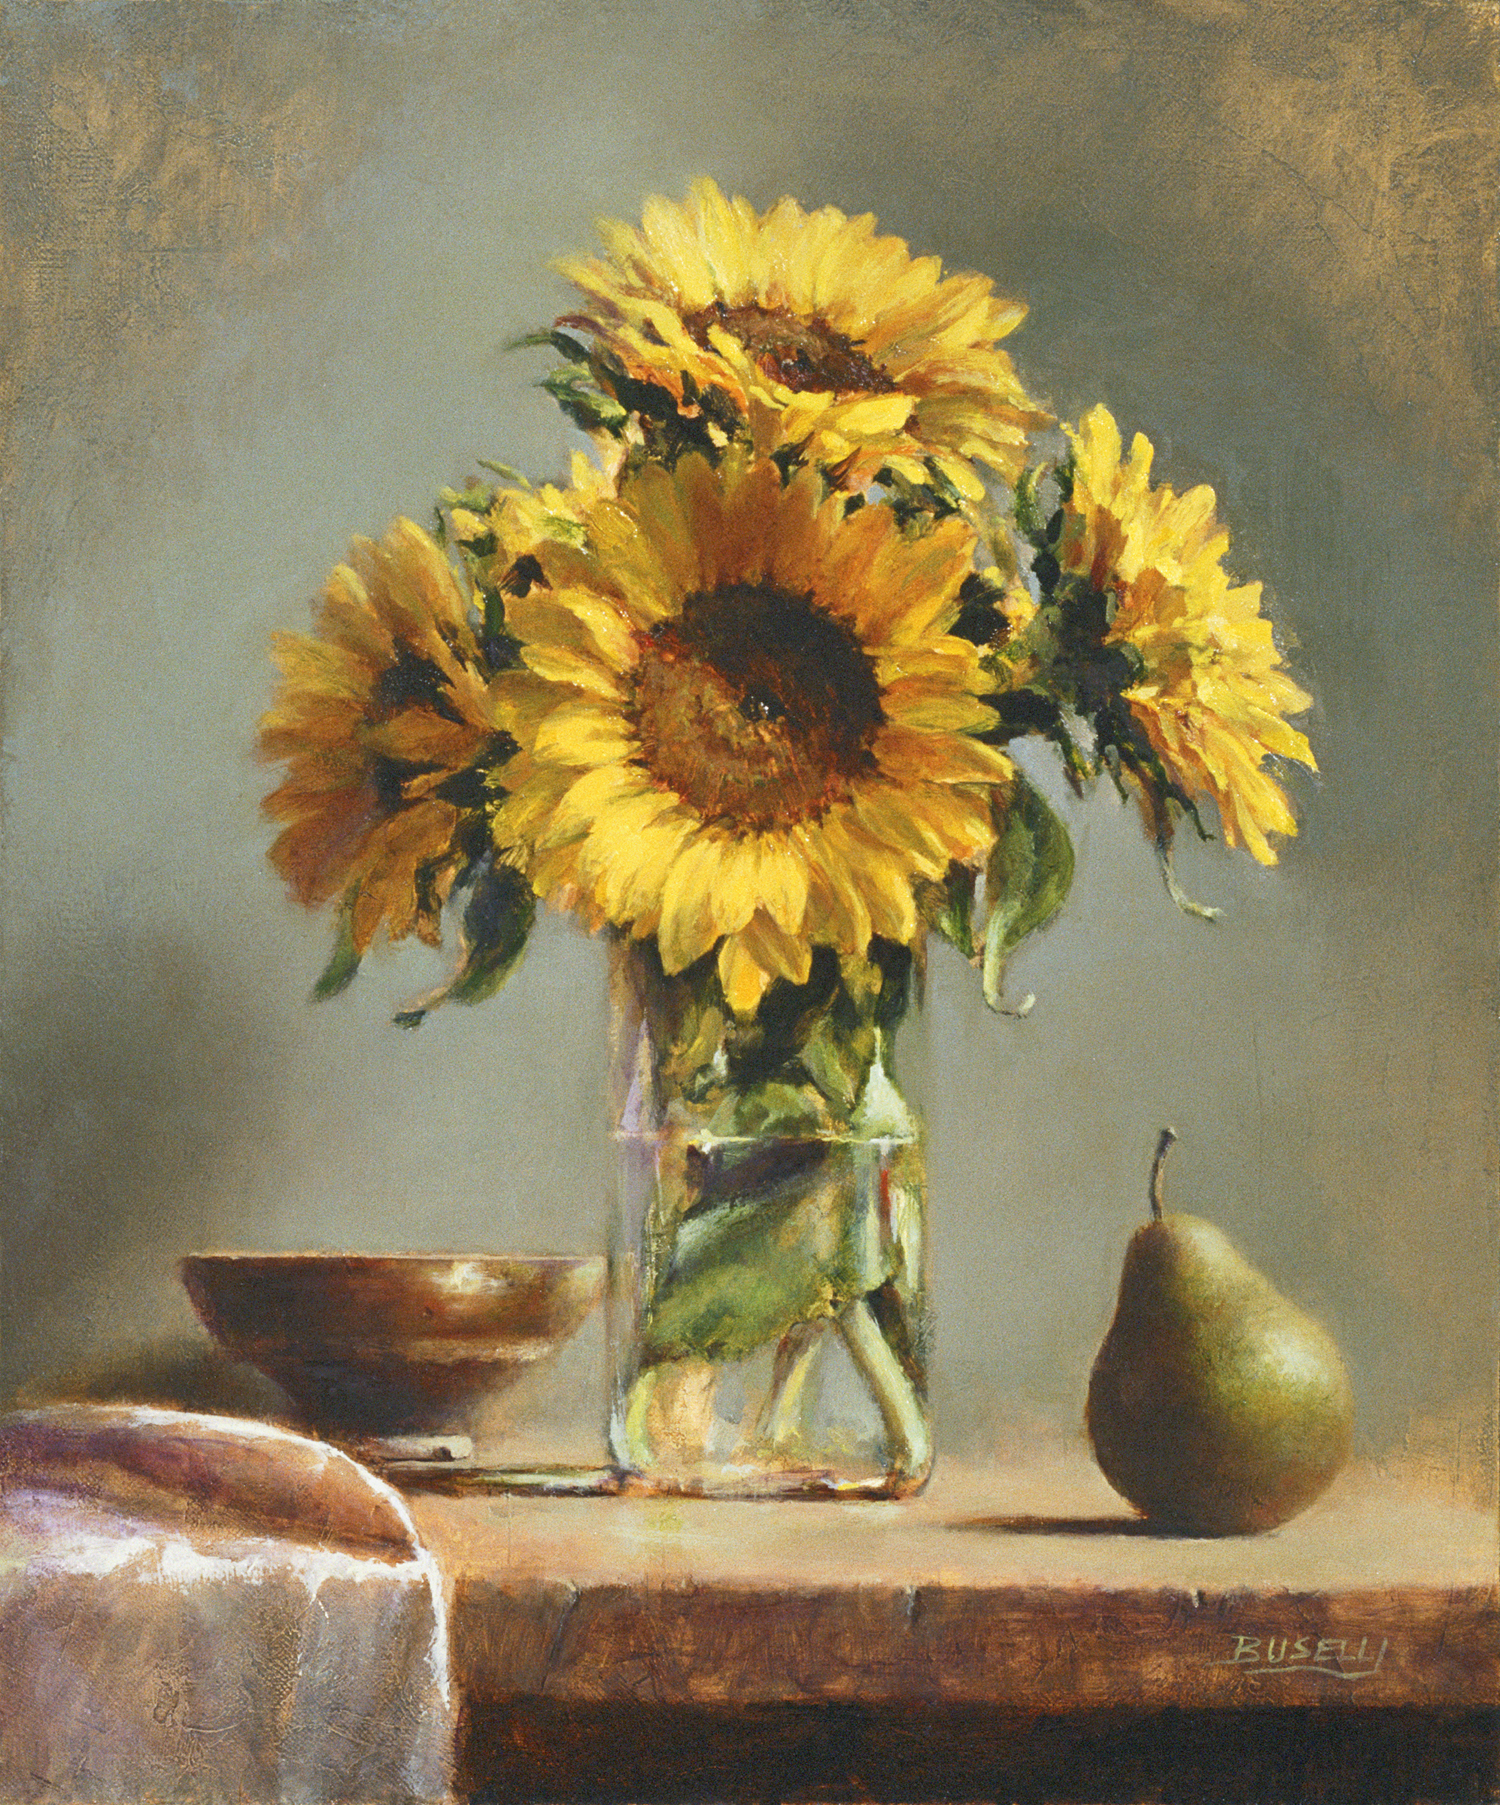 "SUNLIT    ARTIST'S MAGAZINE COVER AWARD    OIL PAINTERS OF AMERICA | BEST STILL-LIFE AWARD    oil on linen | 18"" x 15"""